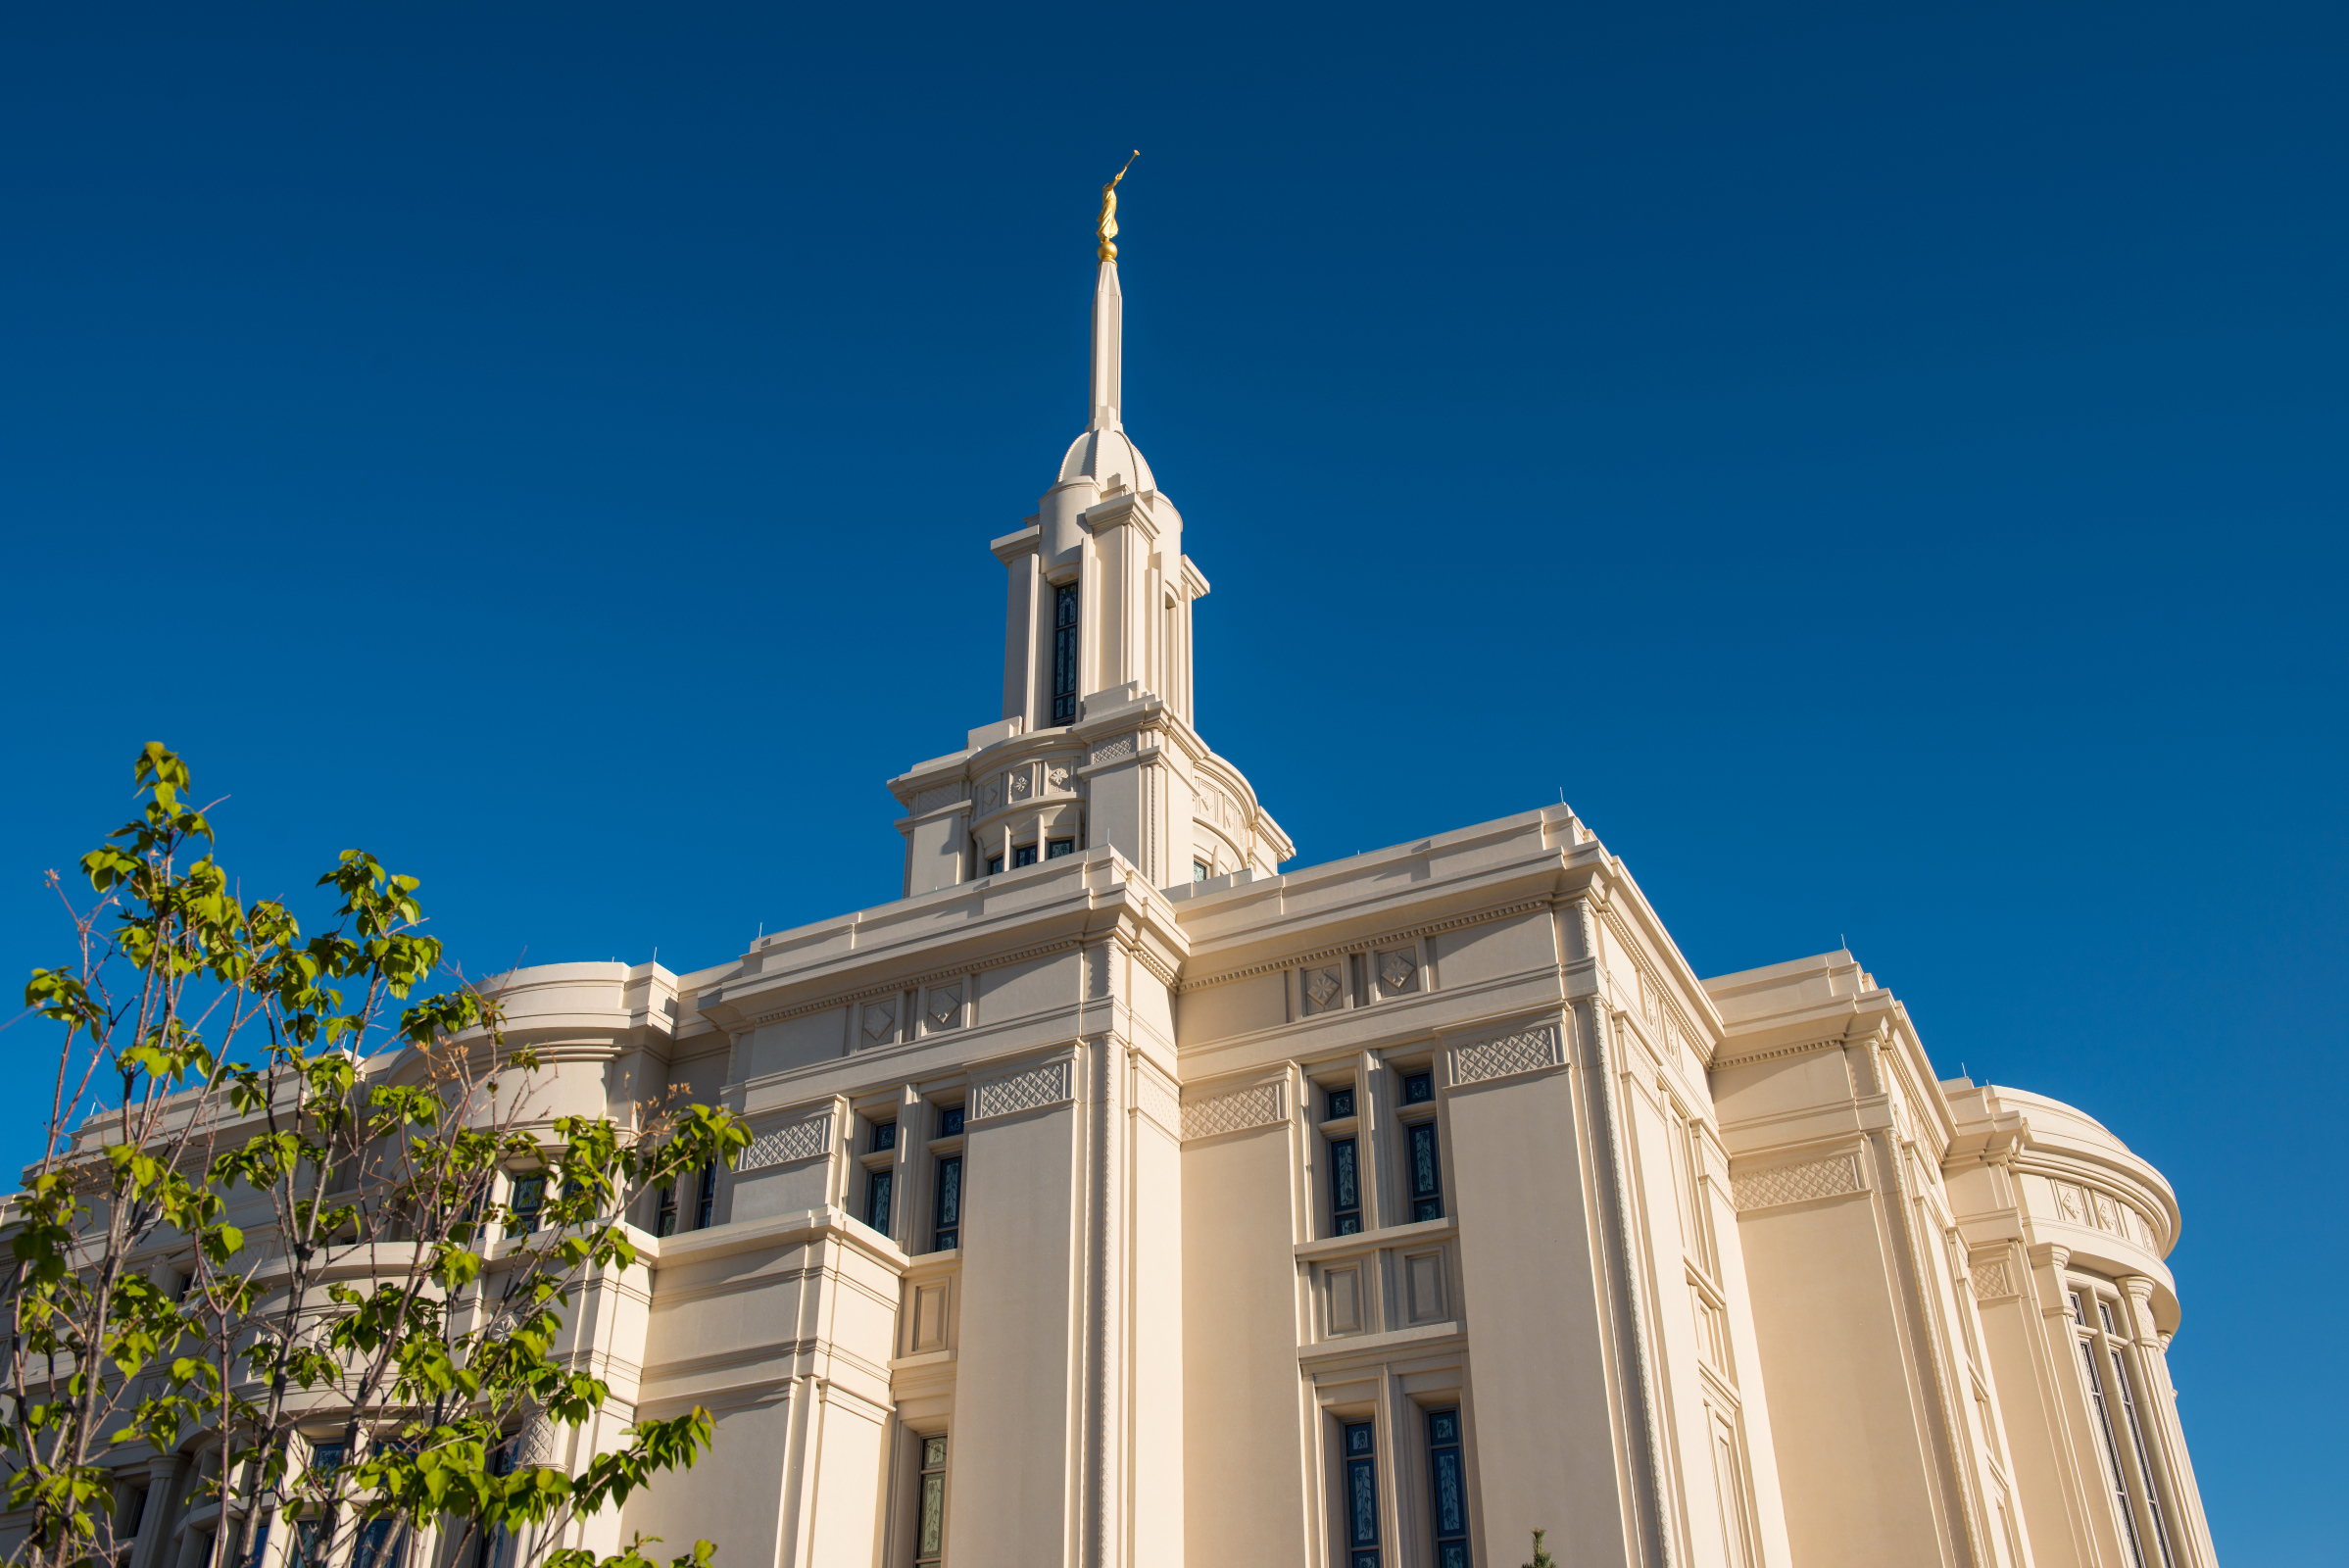 The Church of Jesus Christ of Latter-day Saints - East Wenatchee WA | 667 10th St NE, East Wenatchee, WA, 98802 | +1 (509) 884-1836